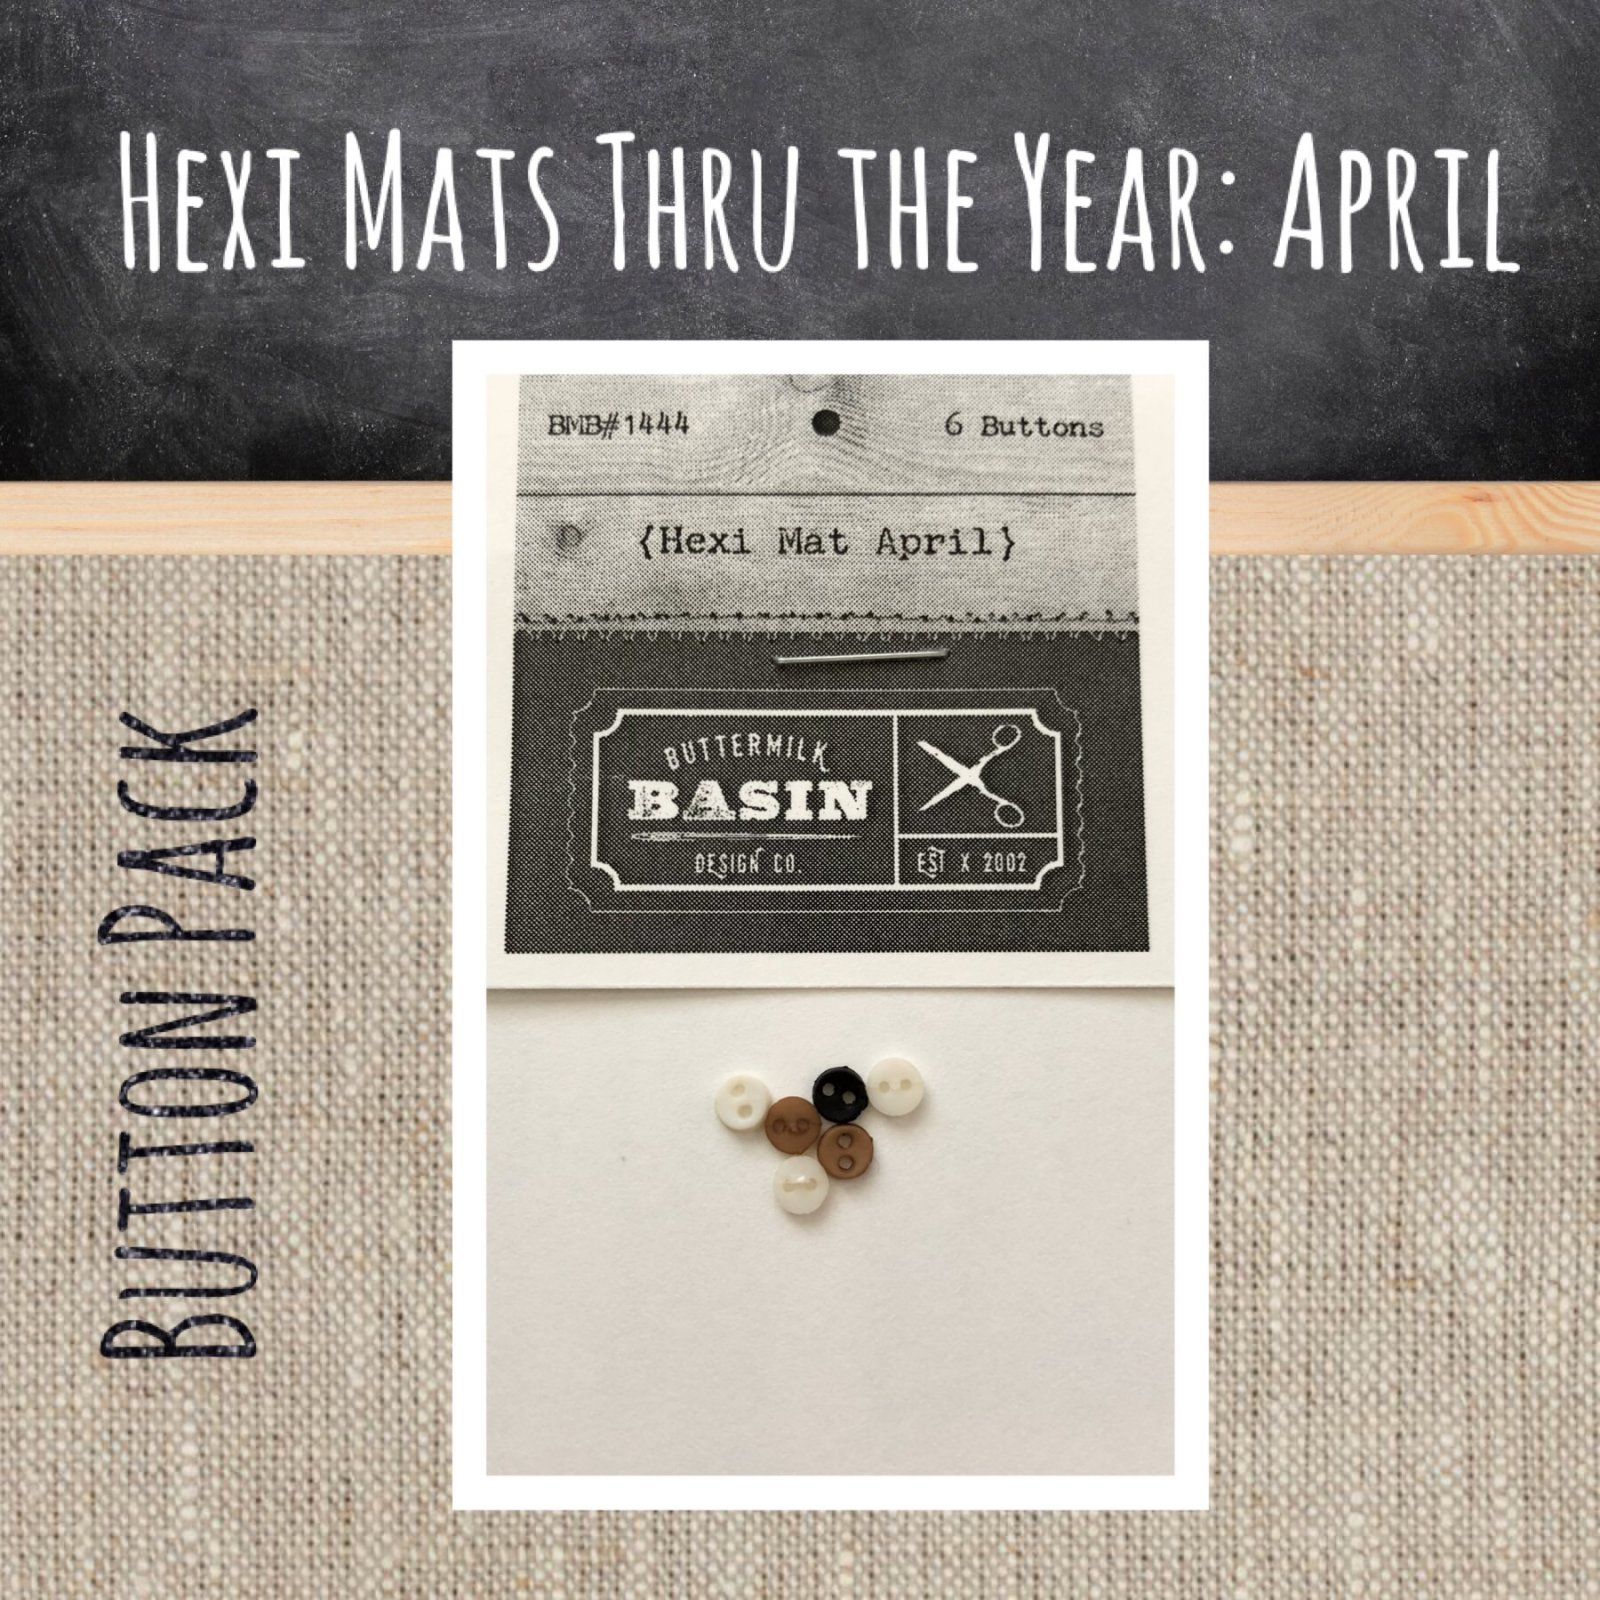 Hexi Mats thru the Year * April BUTTON pack